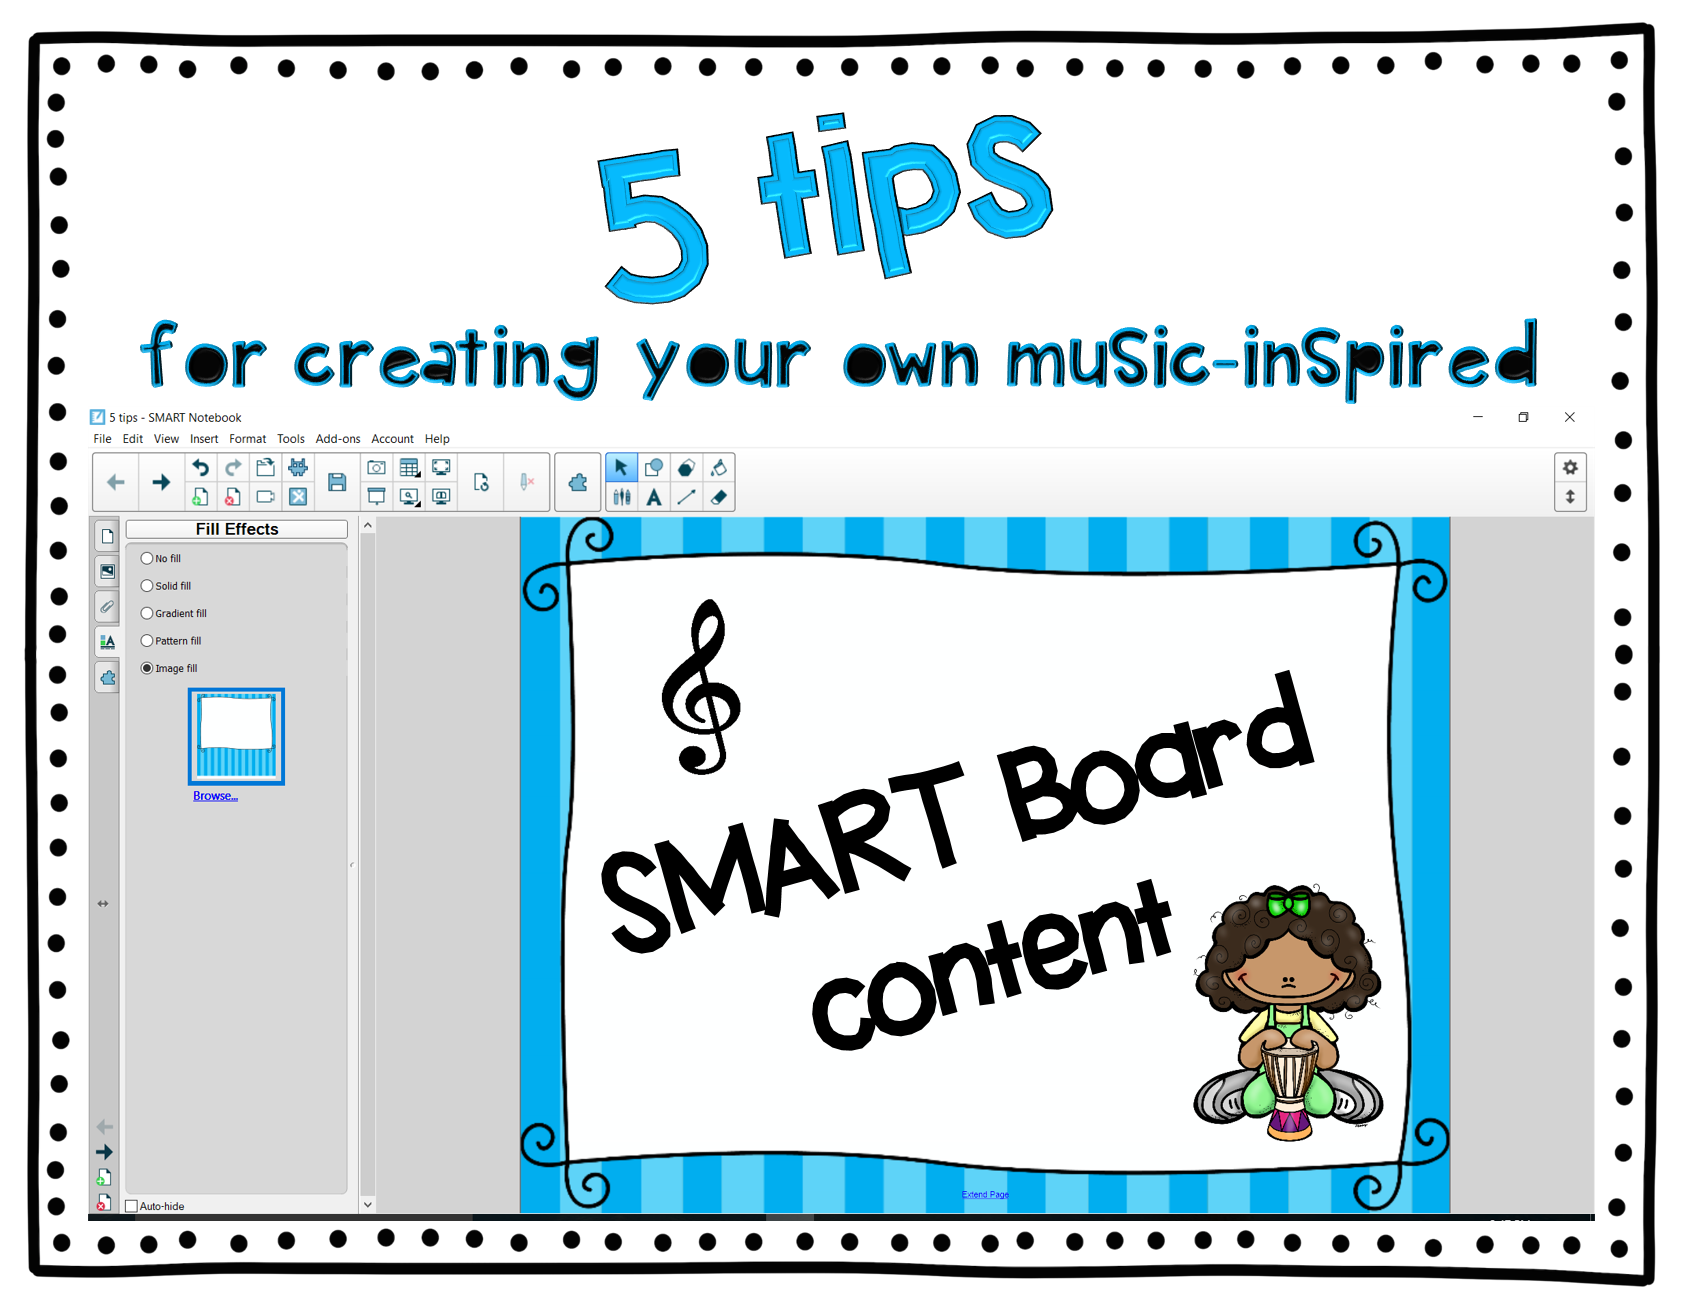 5 tips for creating your own music-inspired SMART Board content